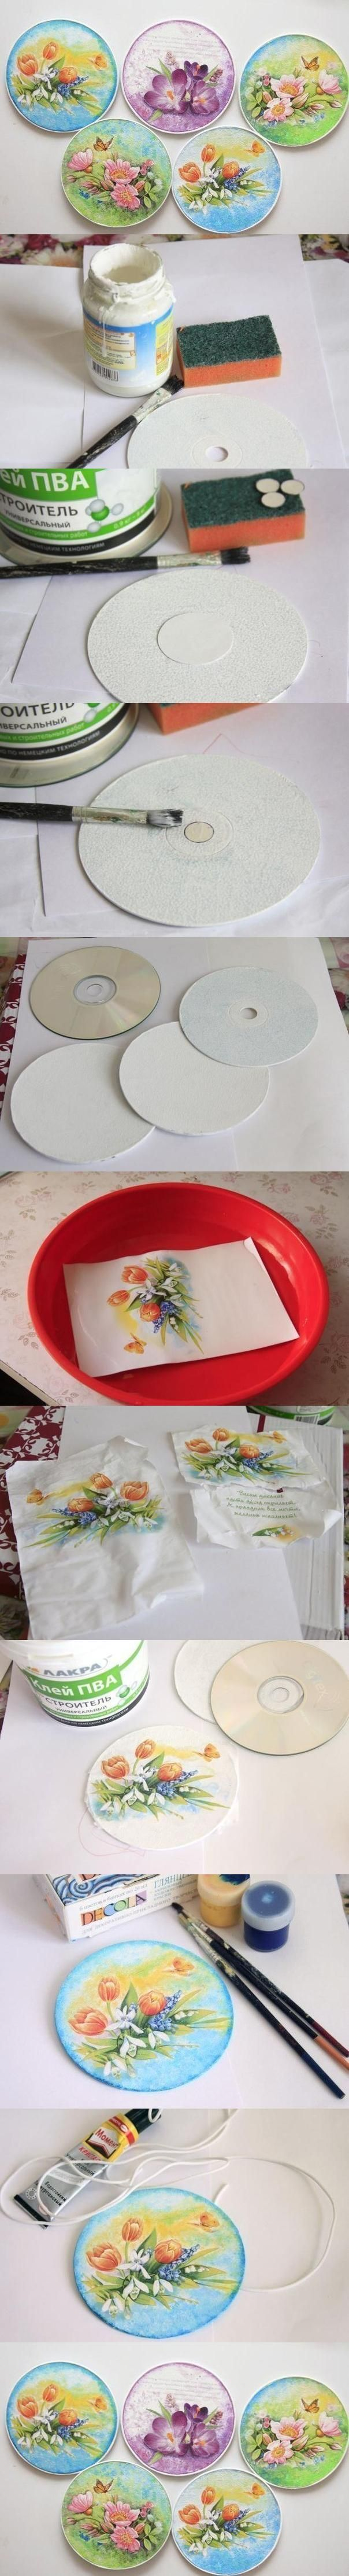 DIY Nice Old CD Paintings DIY Projects | UsefulDIY.com Follow Us on Facebook ==> http://www.facebook.com/UsefulDiy